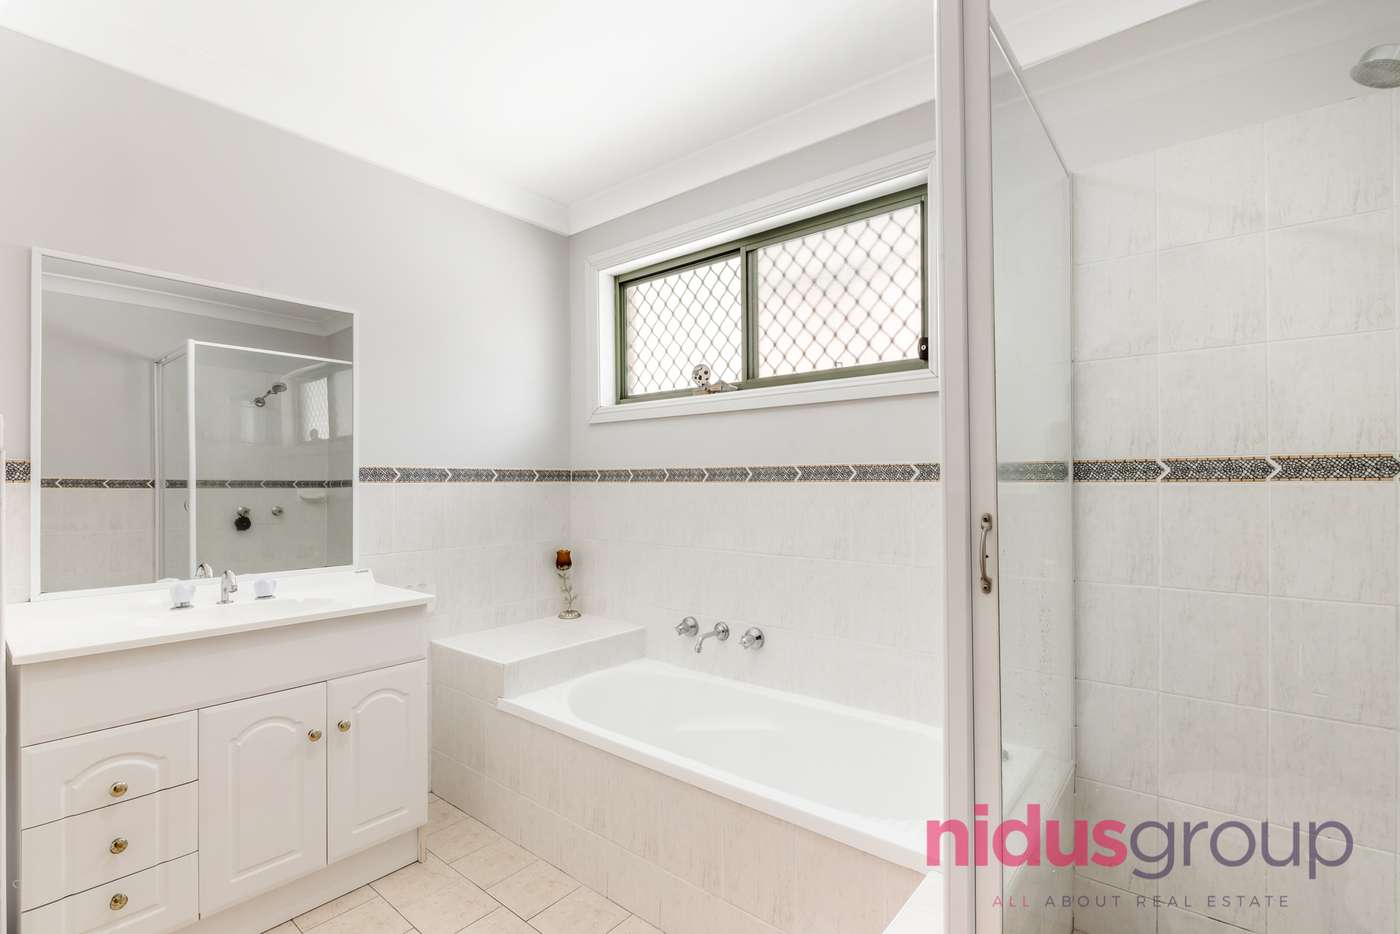 Fifth view of Homely townhouse listing, 9/54 Meacher Street, Mount Druitt NSW 2770